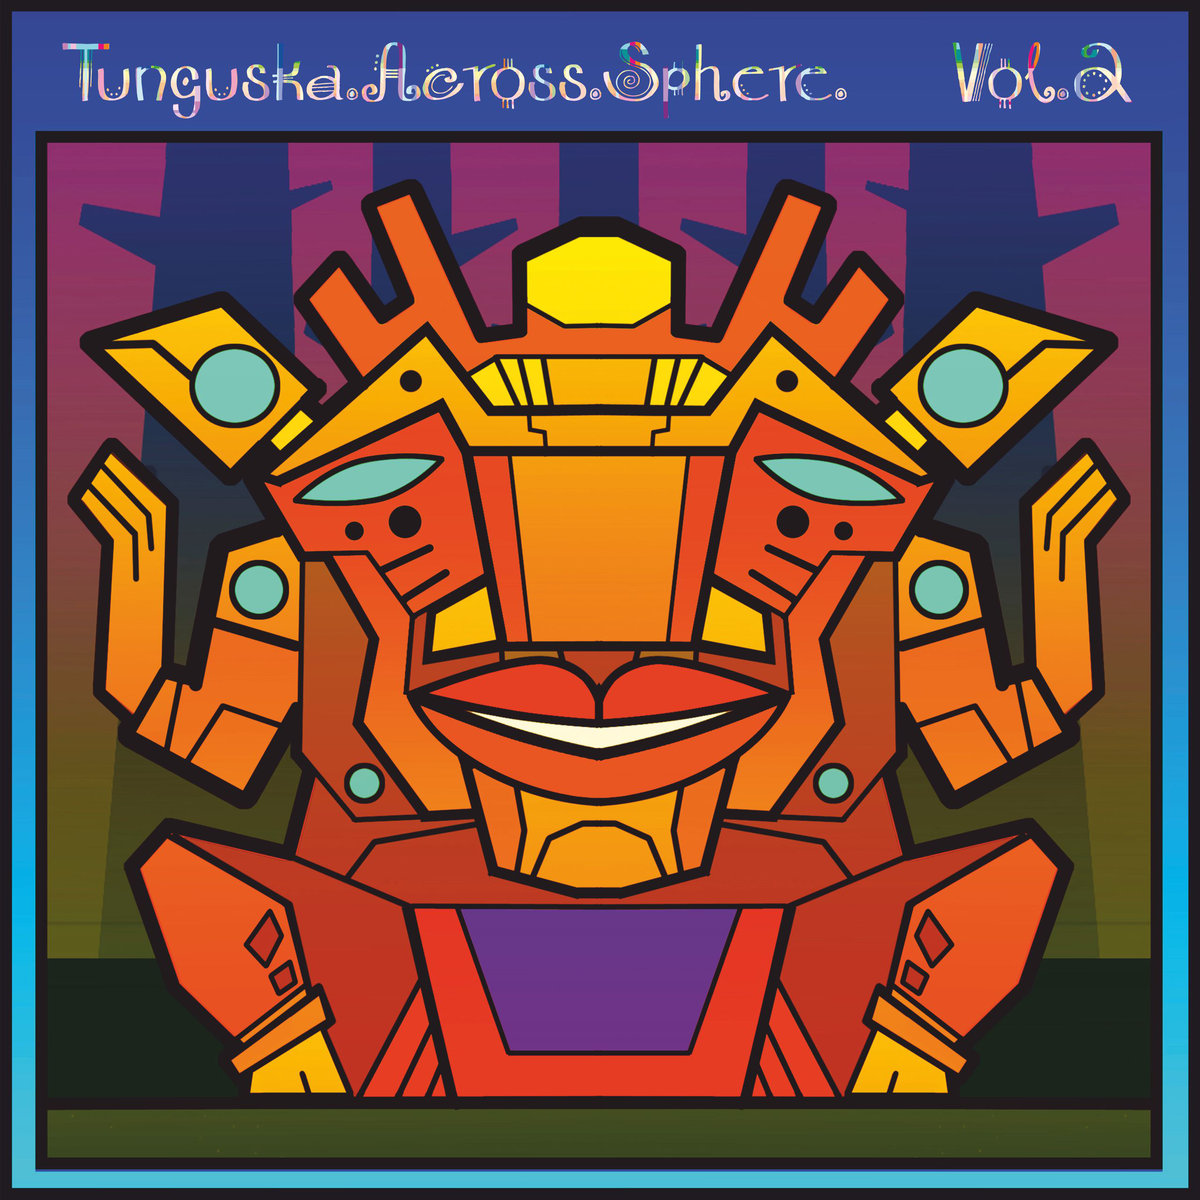 Ellipsis II - Tunguska.Across.Sphere. Vol.2 @ 'Ellipsis II - Tunguska.Across.Sphere. Vol.2' album (electronic, ambient)